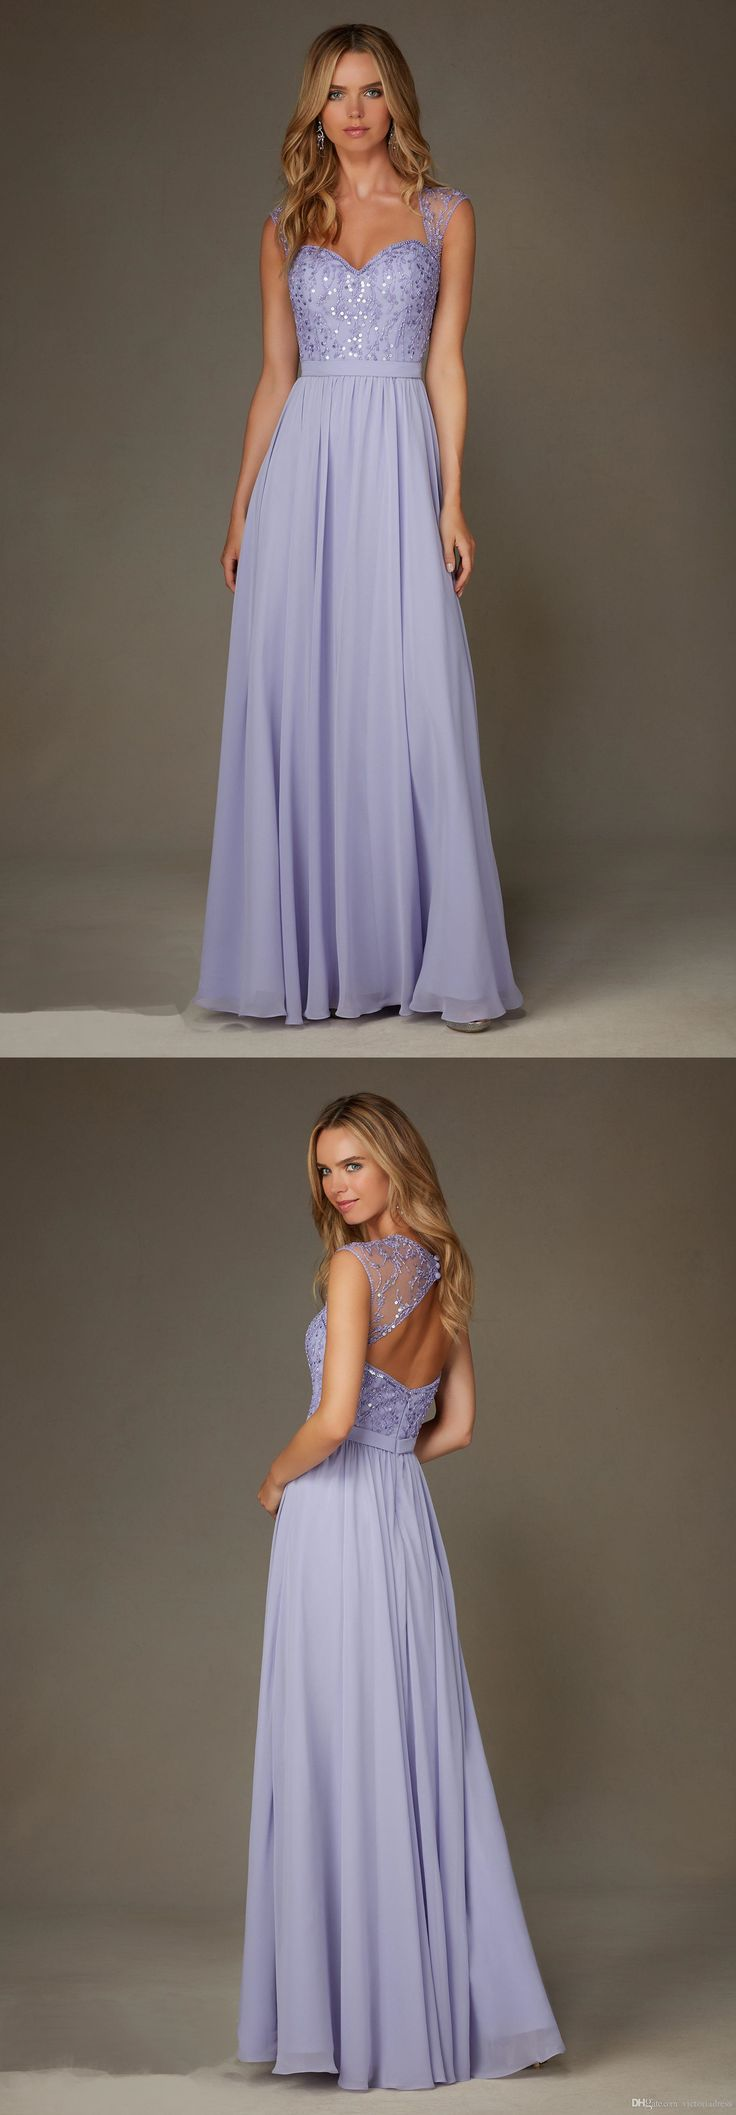 Lilac Bridesmaid Dresses 2016 A Line Sweetheart Beaded Open Back Long Wedding Party Gowns Chiffon Capped Sleeves Dress For Girls Prom